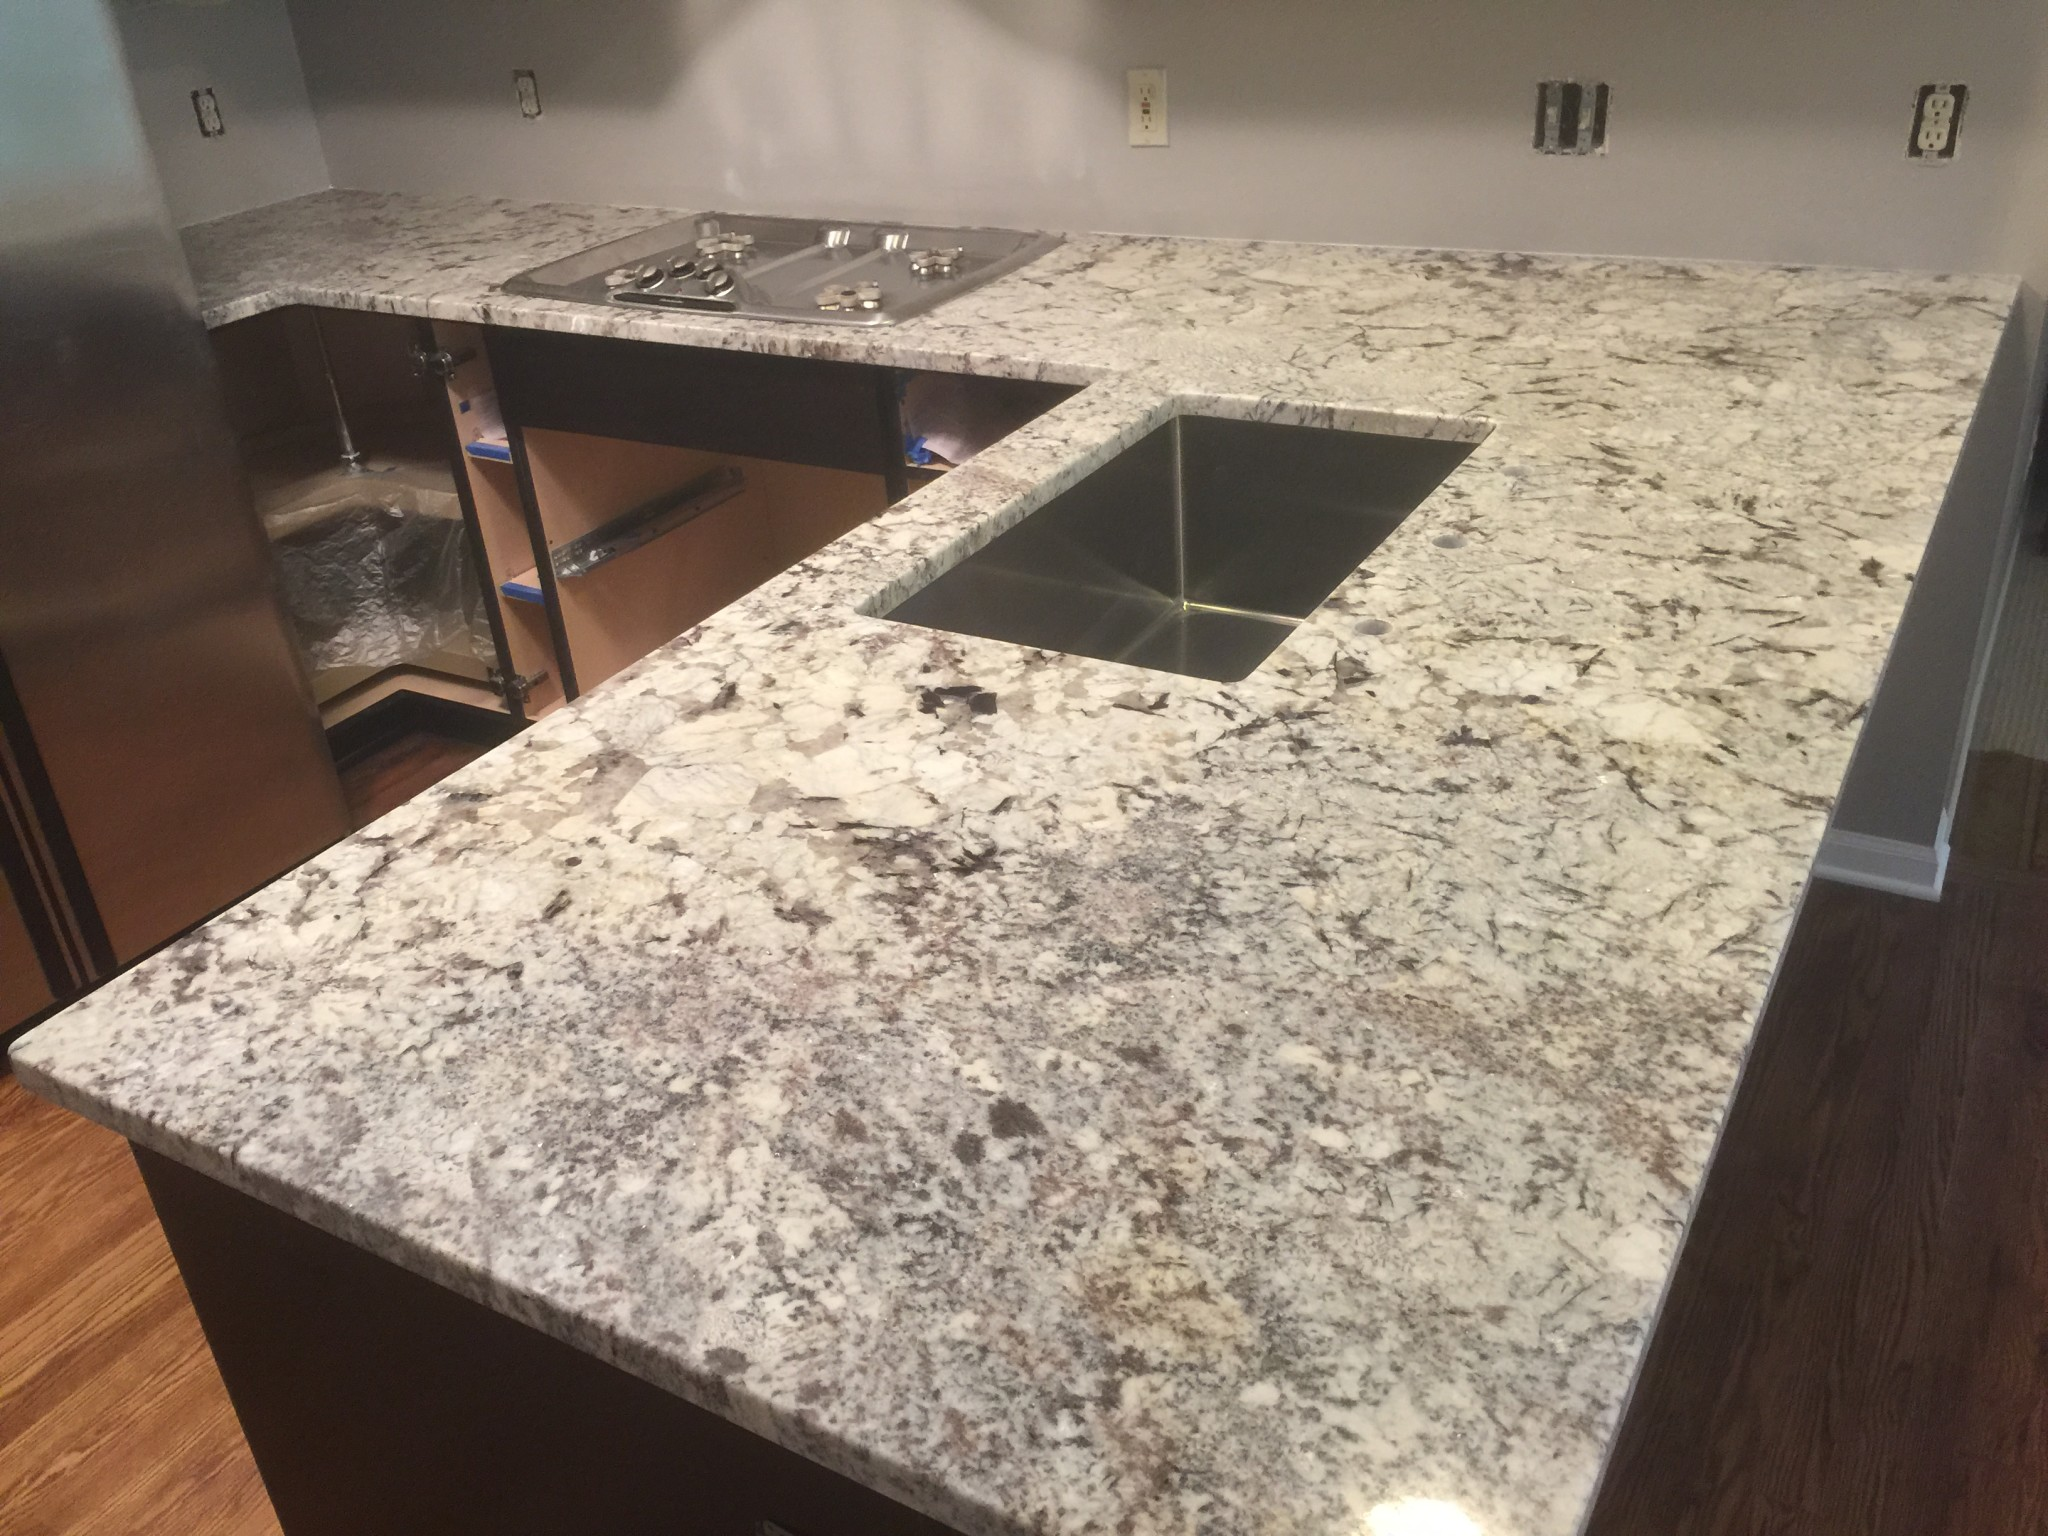 Our Unique Exotic Light Granite Countertop Brings A Style To A Great Home.  Leave Comment